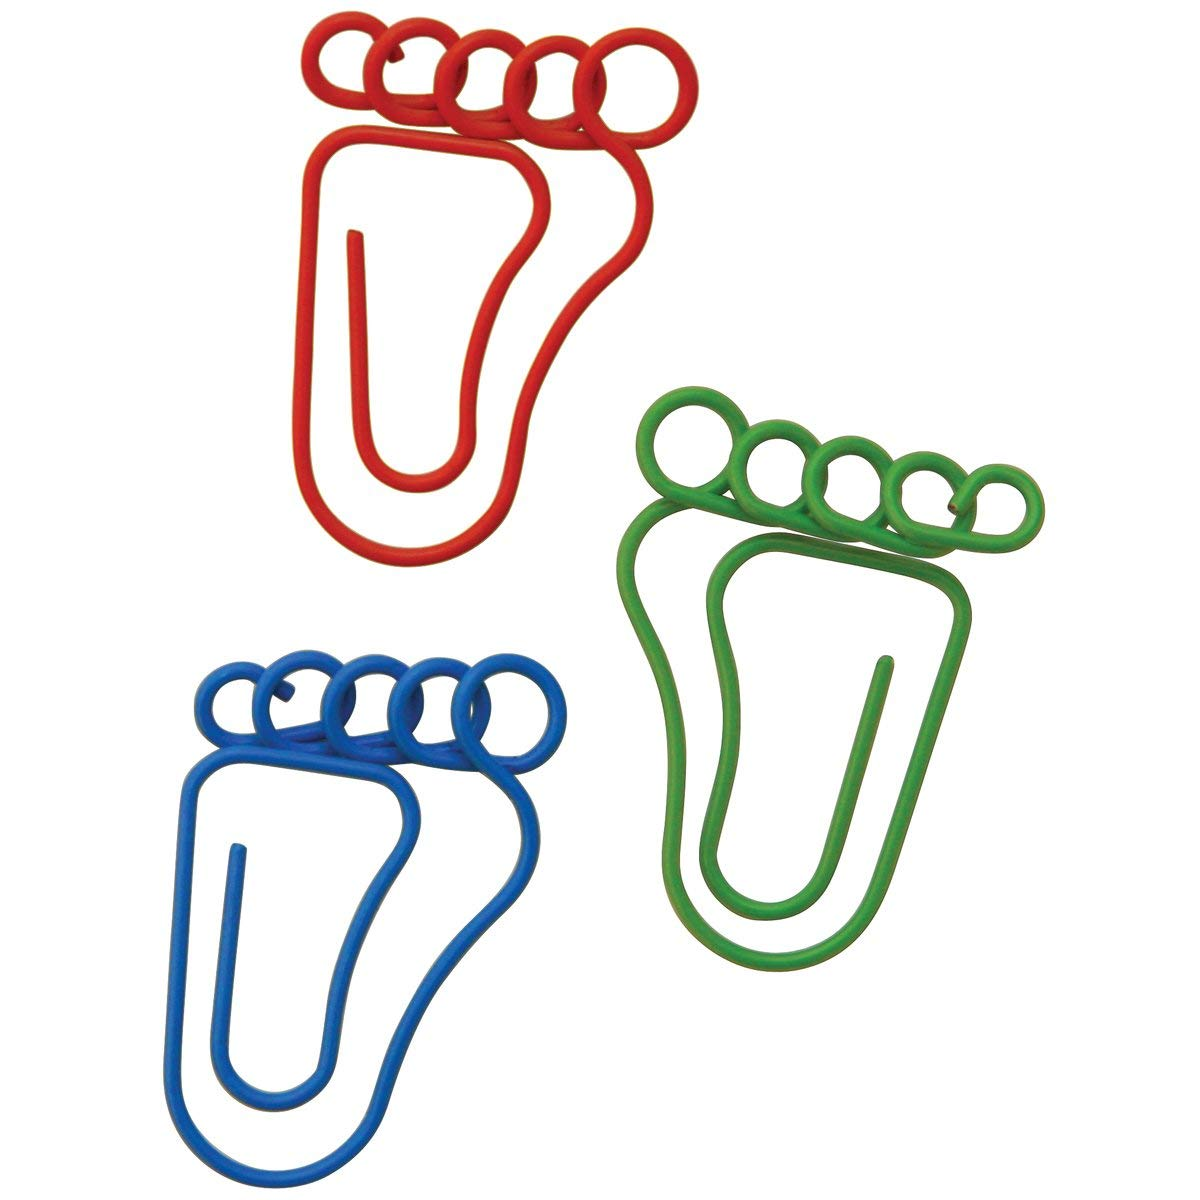 20 PCS Foot Shape Paper Clips Creative Interesting Bookmark Clip Memo Clip Shaped Paper Clips For Office School Home.